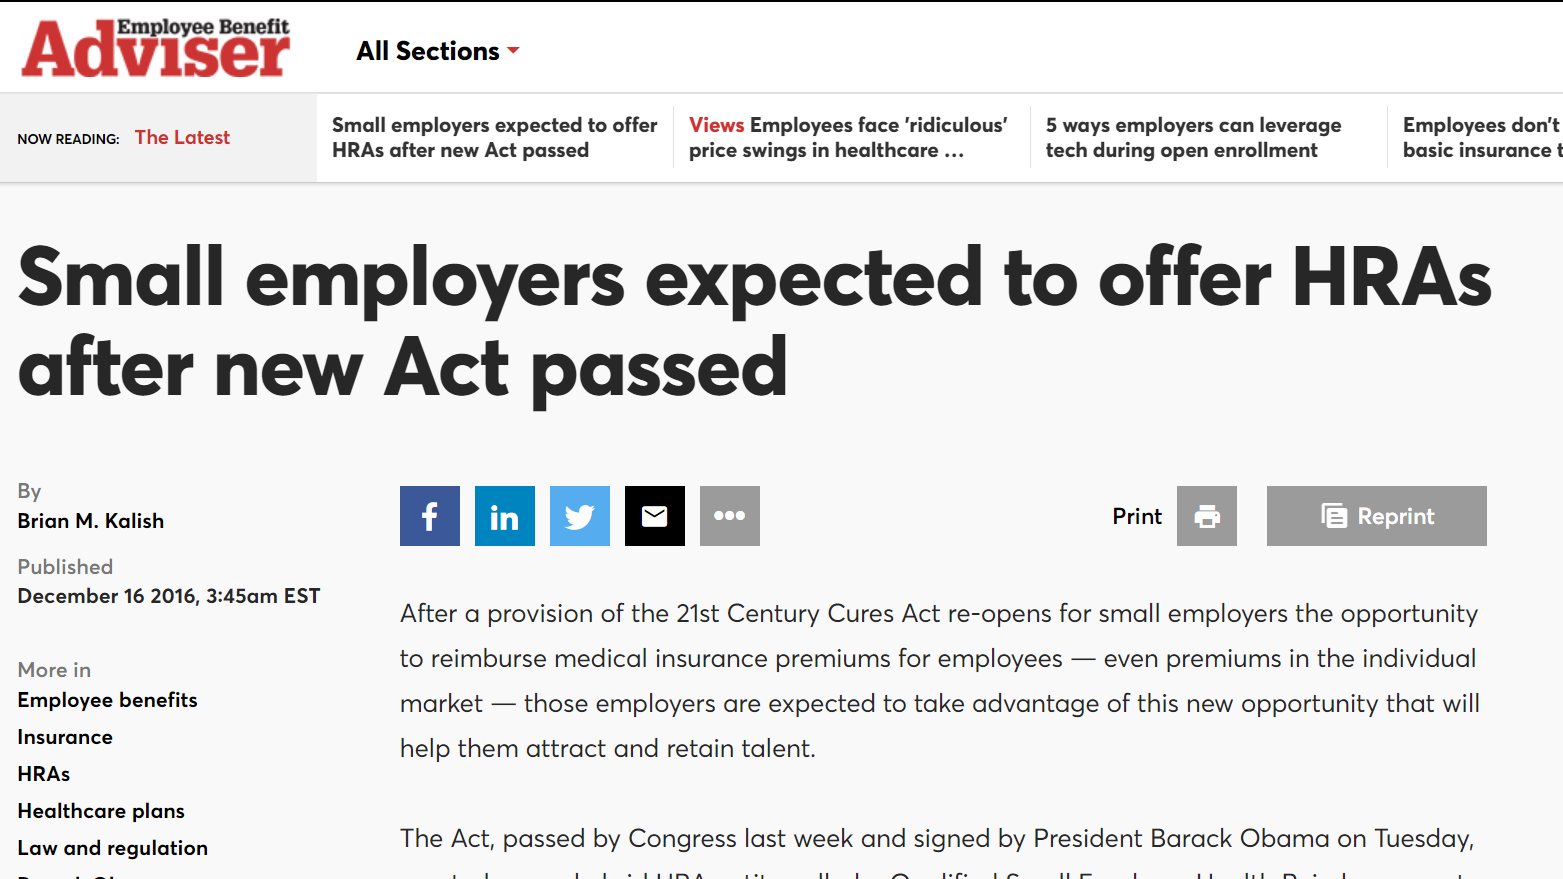 Small employers expected to offer HRAs after new Act passed